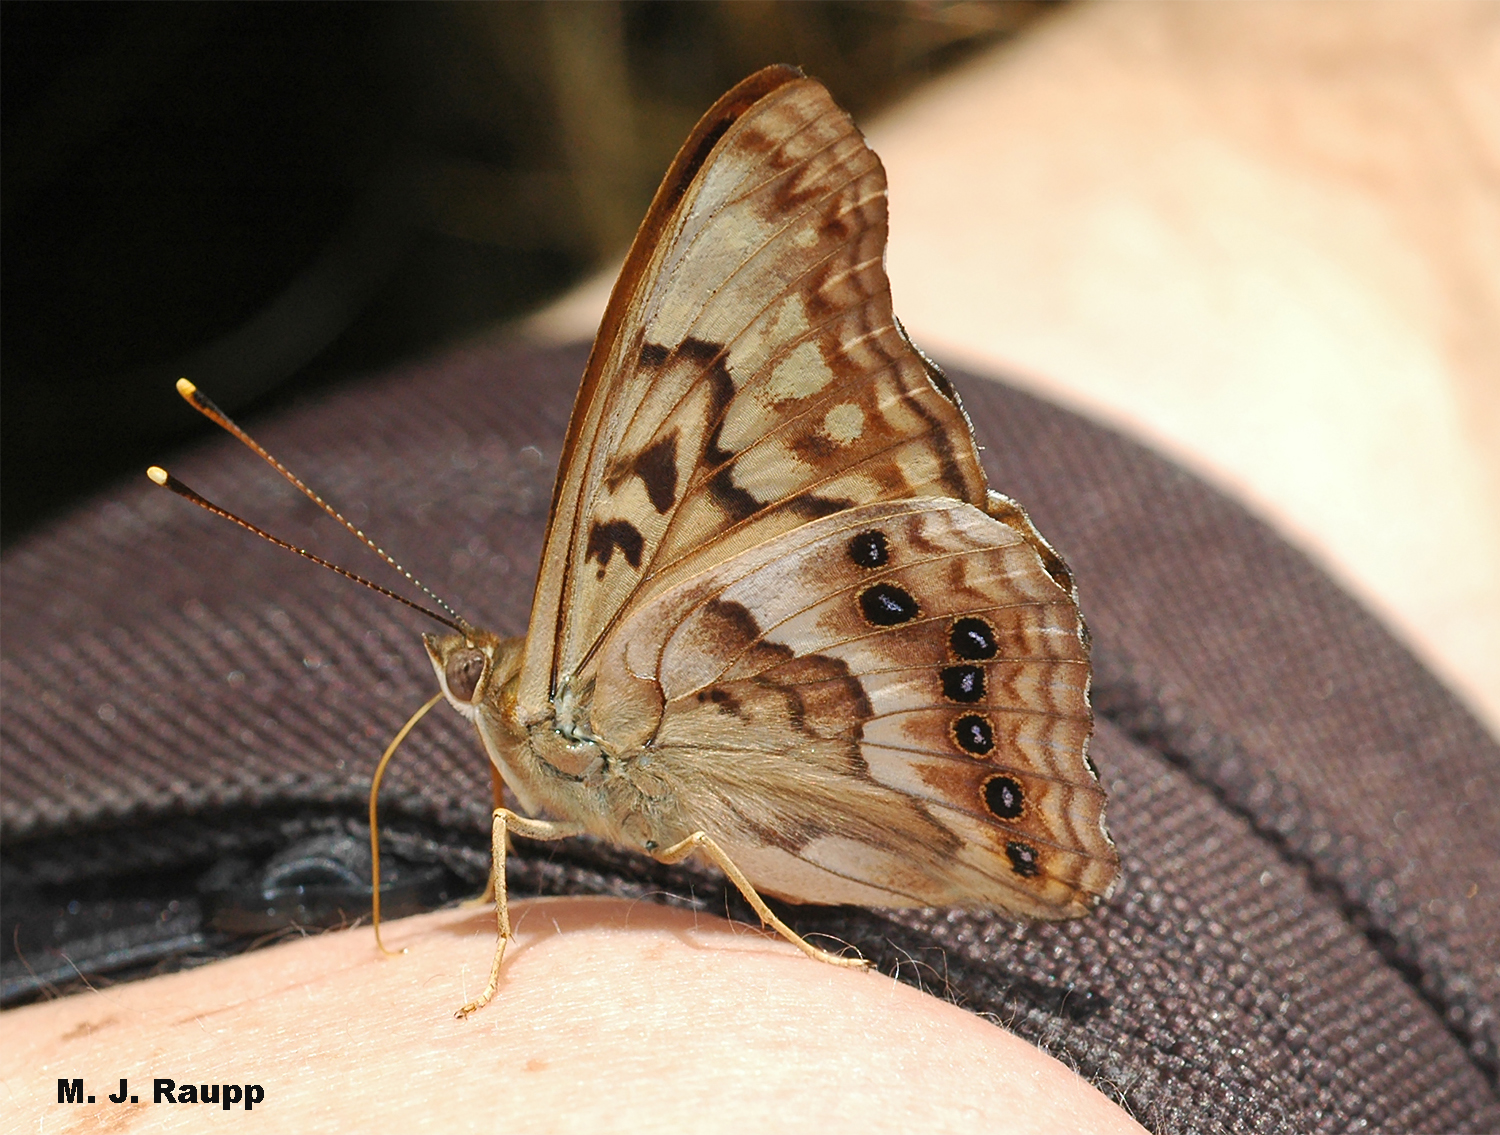 A shoulder glistening with perspiration provides much needed salt to a fearless tawny emperor butterfly.